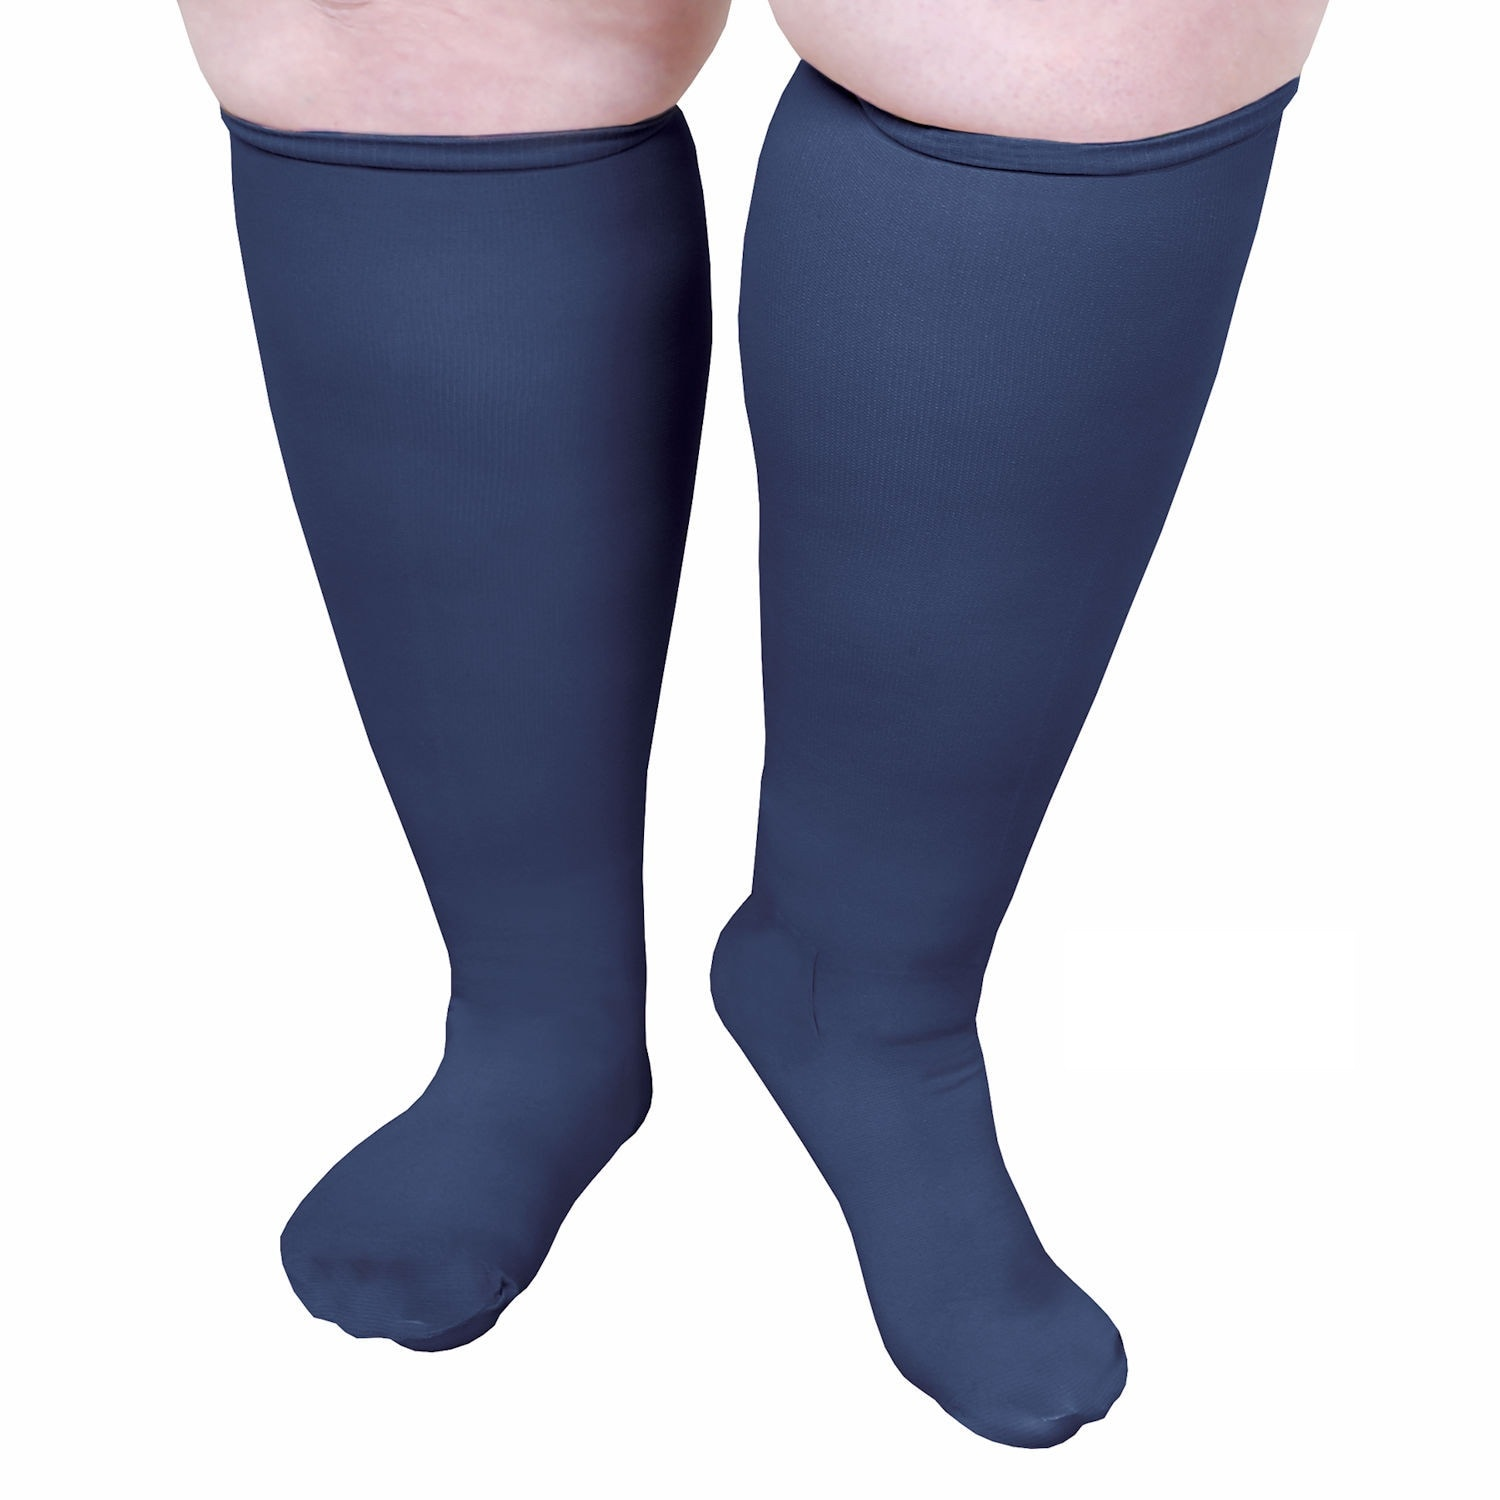 Unisex-Extra-Wide-Moderate-Compression-Knee-High-Socks-Up-to-XW-4E-amp-26-034-Calf thumbnail 13